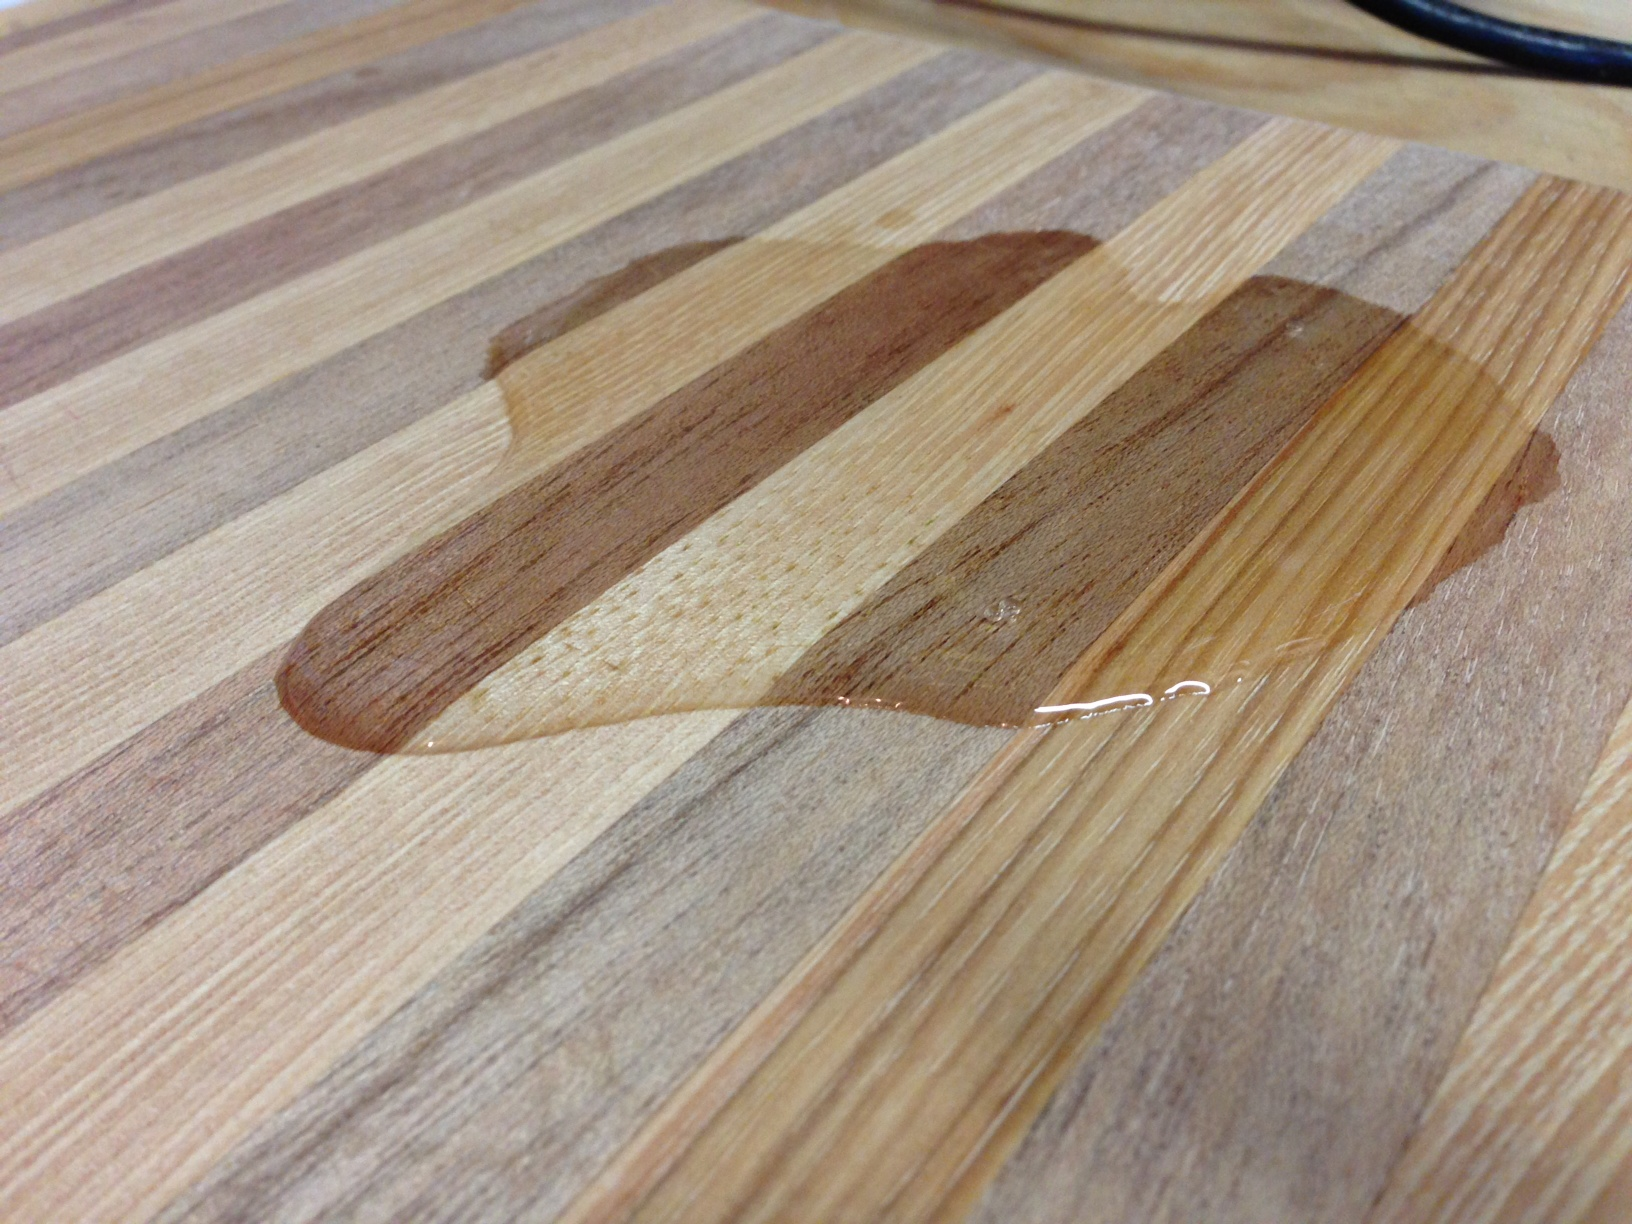 DIY Butcher Block Cutting Board Tutorial The Rodimels Family Blog